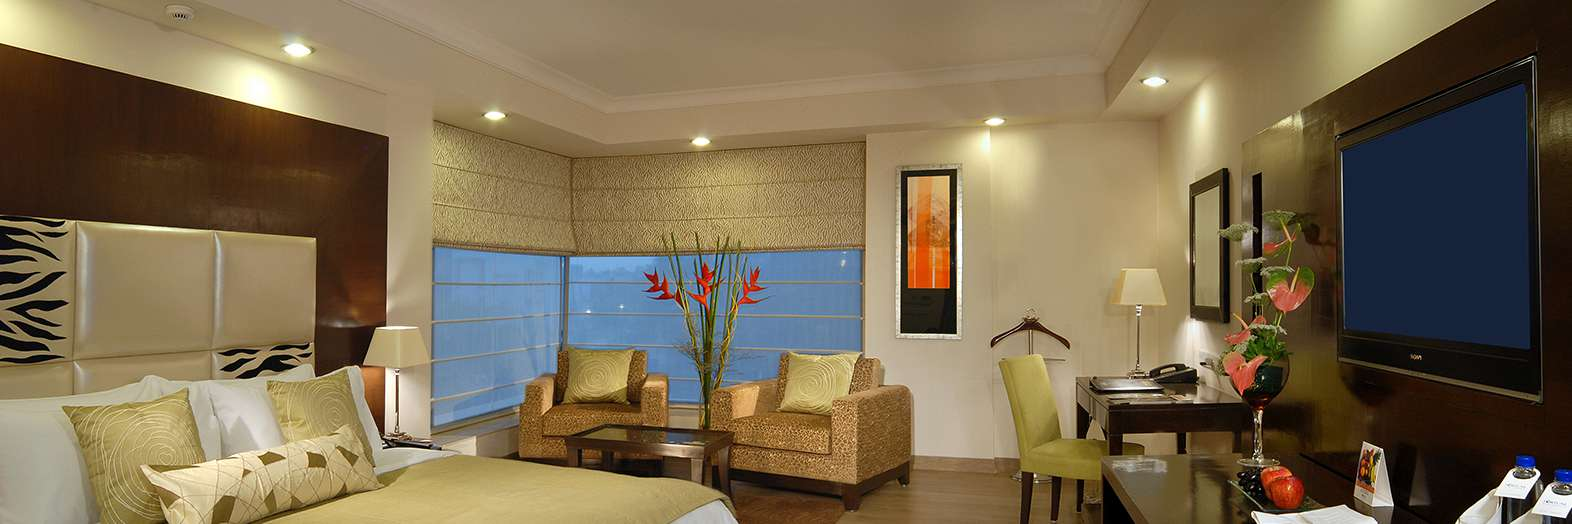 Hotel offers in Noida